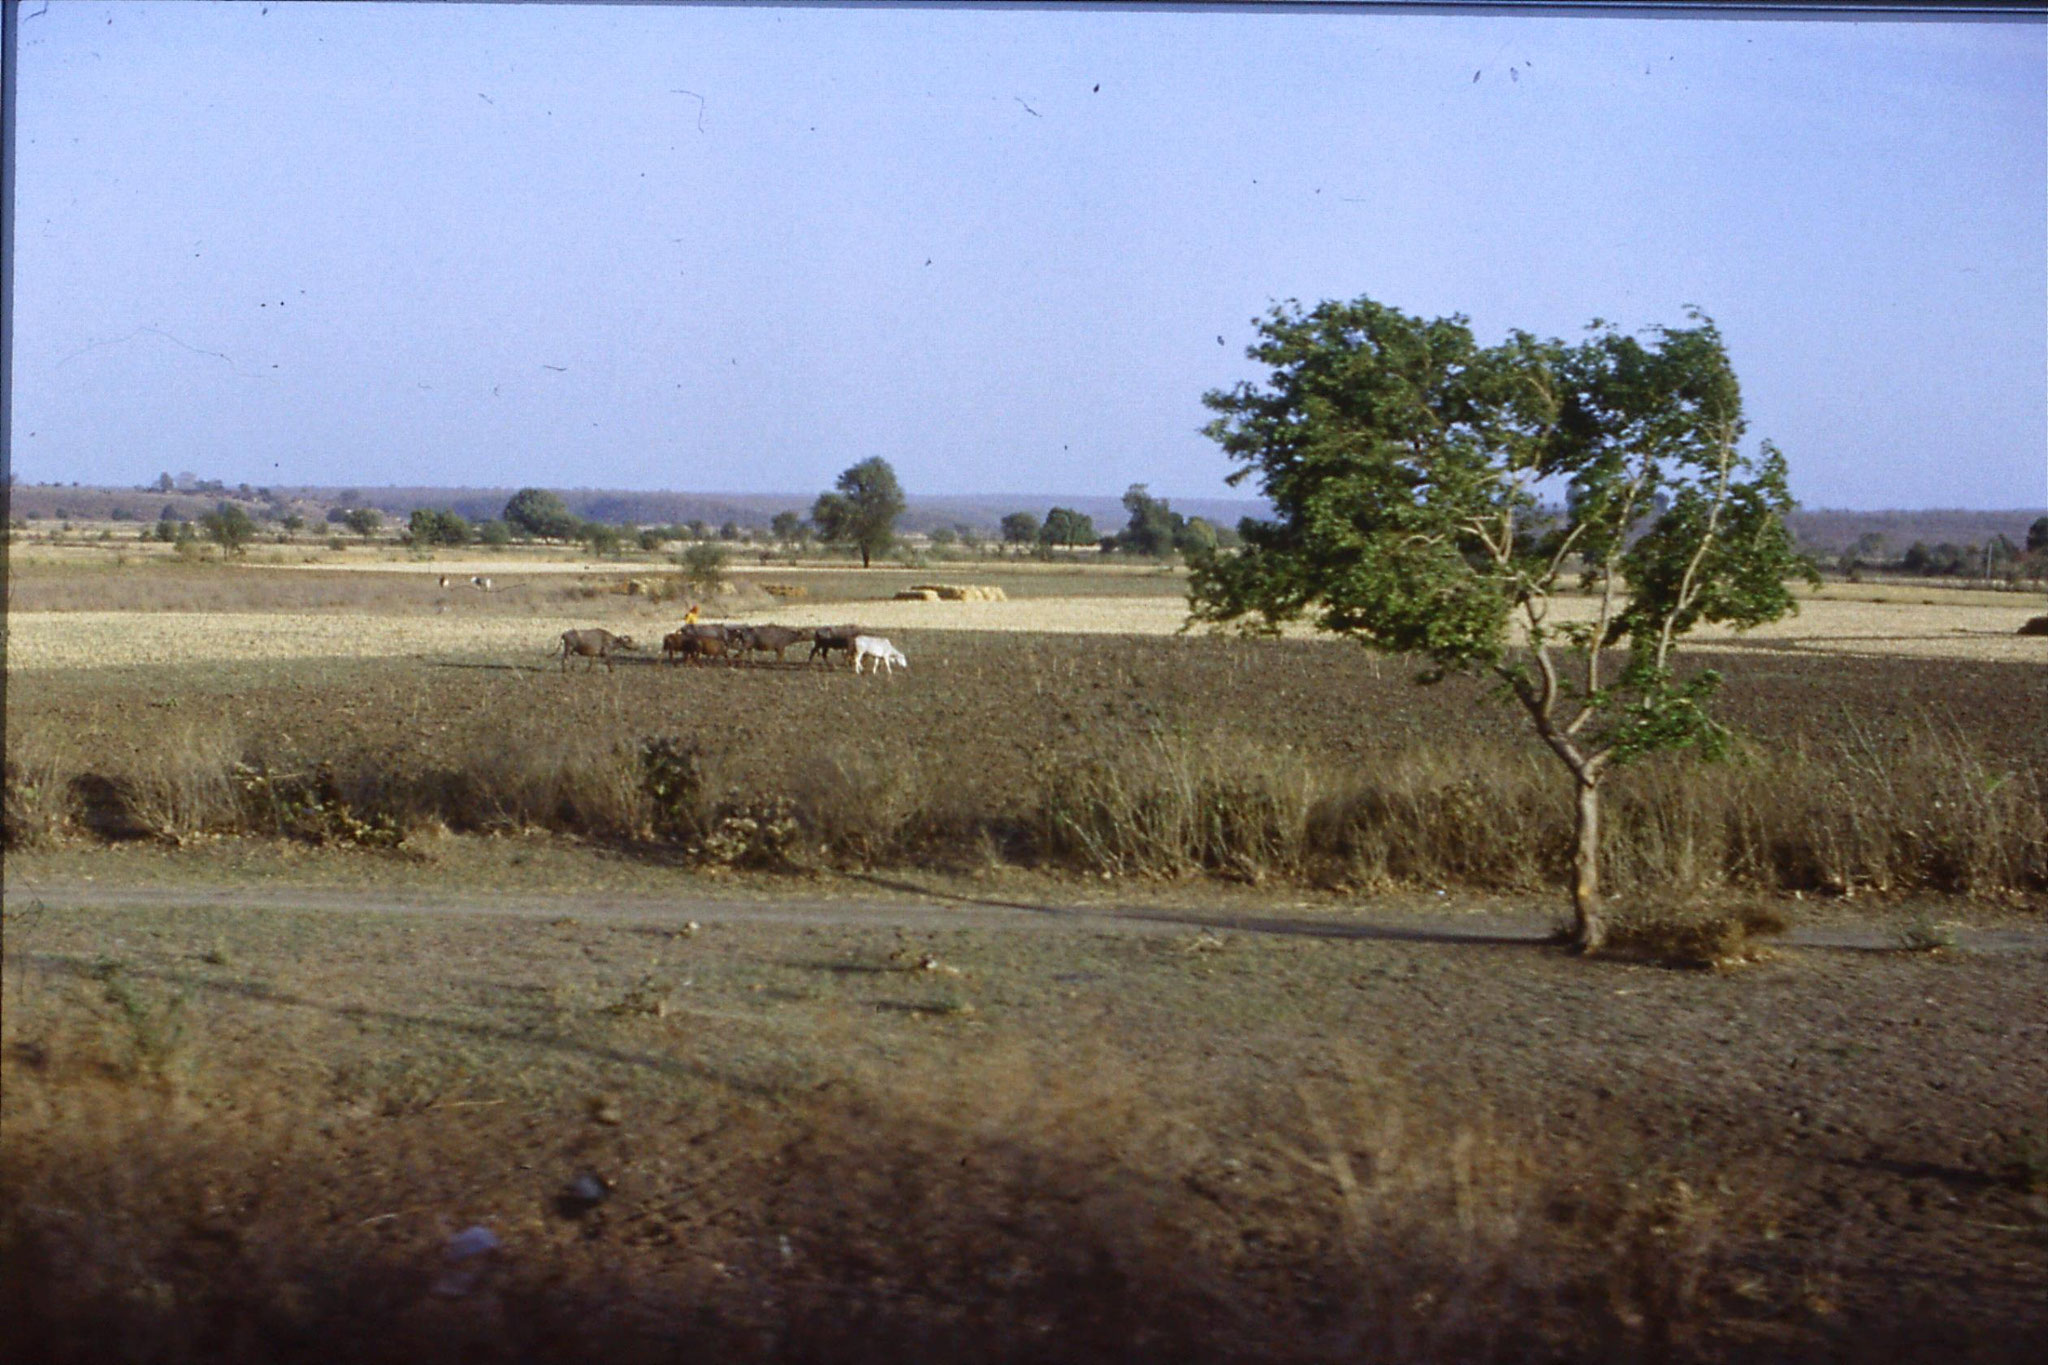 108/33: 24/3/1990 on train soon after Bhopal looking east